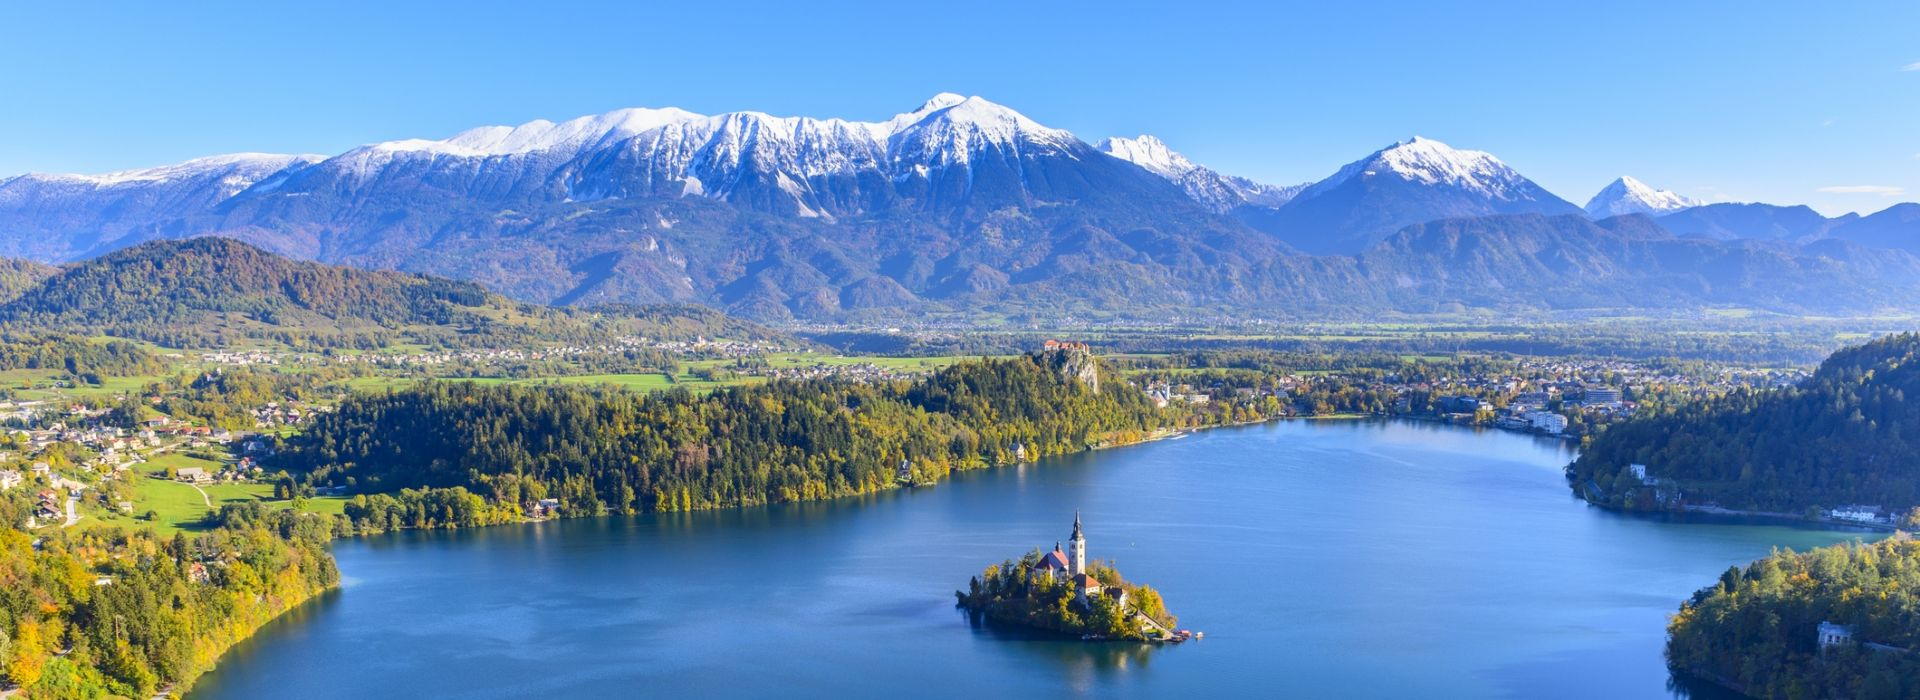 Travelling Slovenia – Tours and Trips in Slovenia